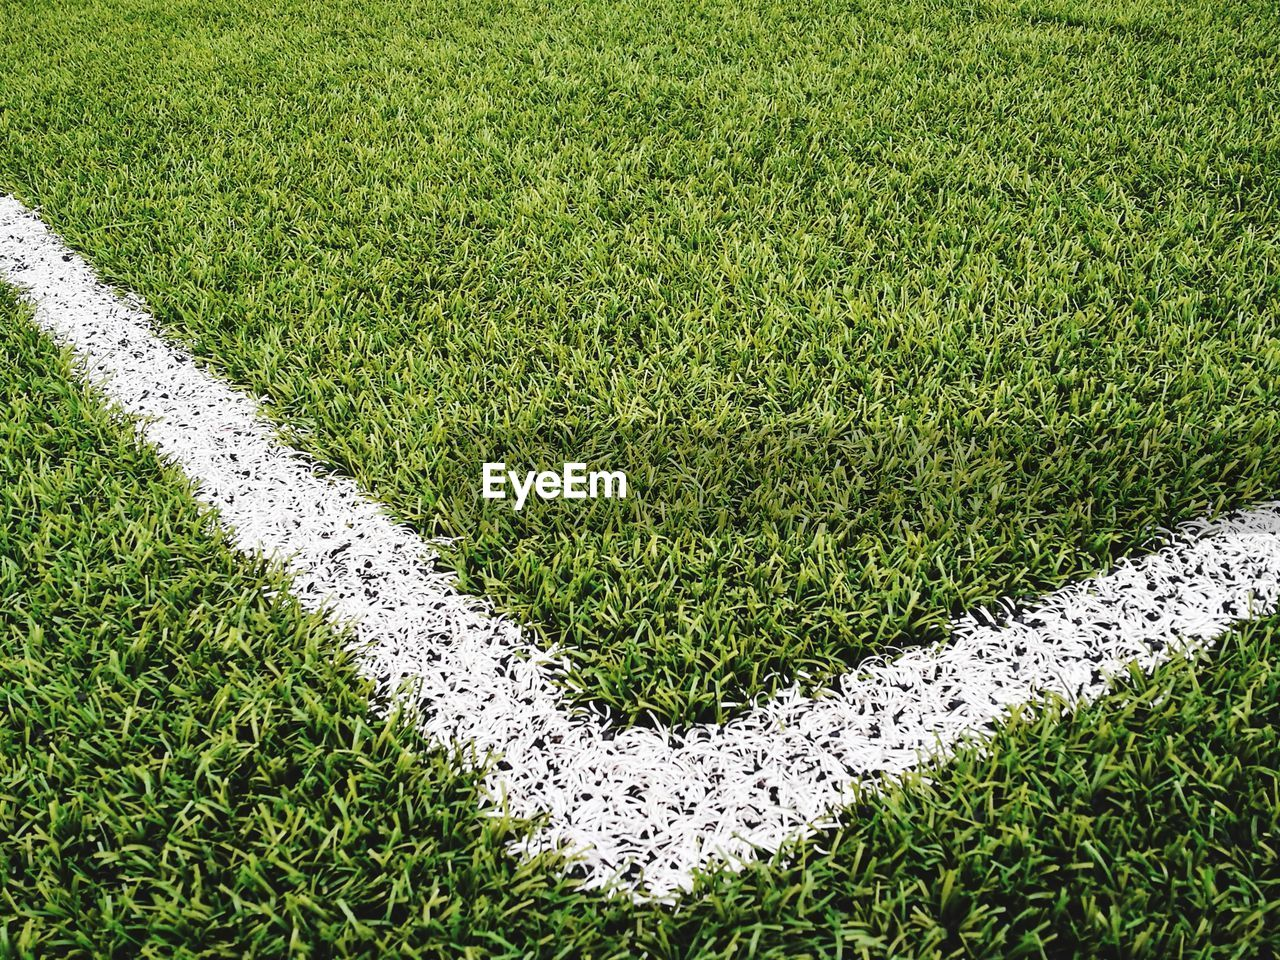 green color, grass, plant, high angle view, no people, day, growth, land, field, nature, playing field, sport, outdoors, soccer field, turf, white color, soccer, grass area, full frame, beauty in nature, hedge